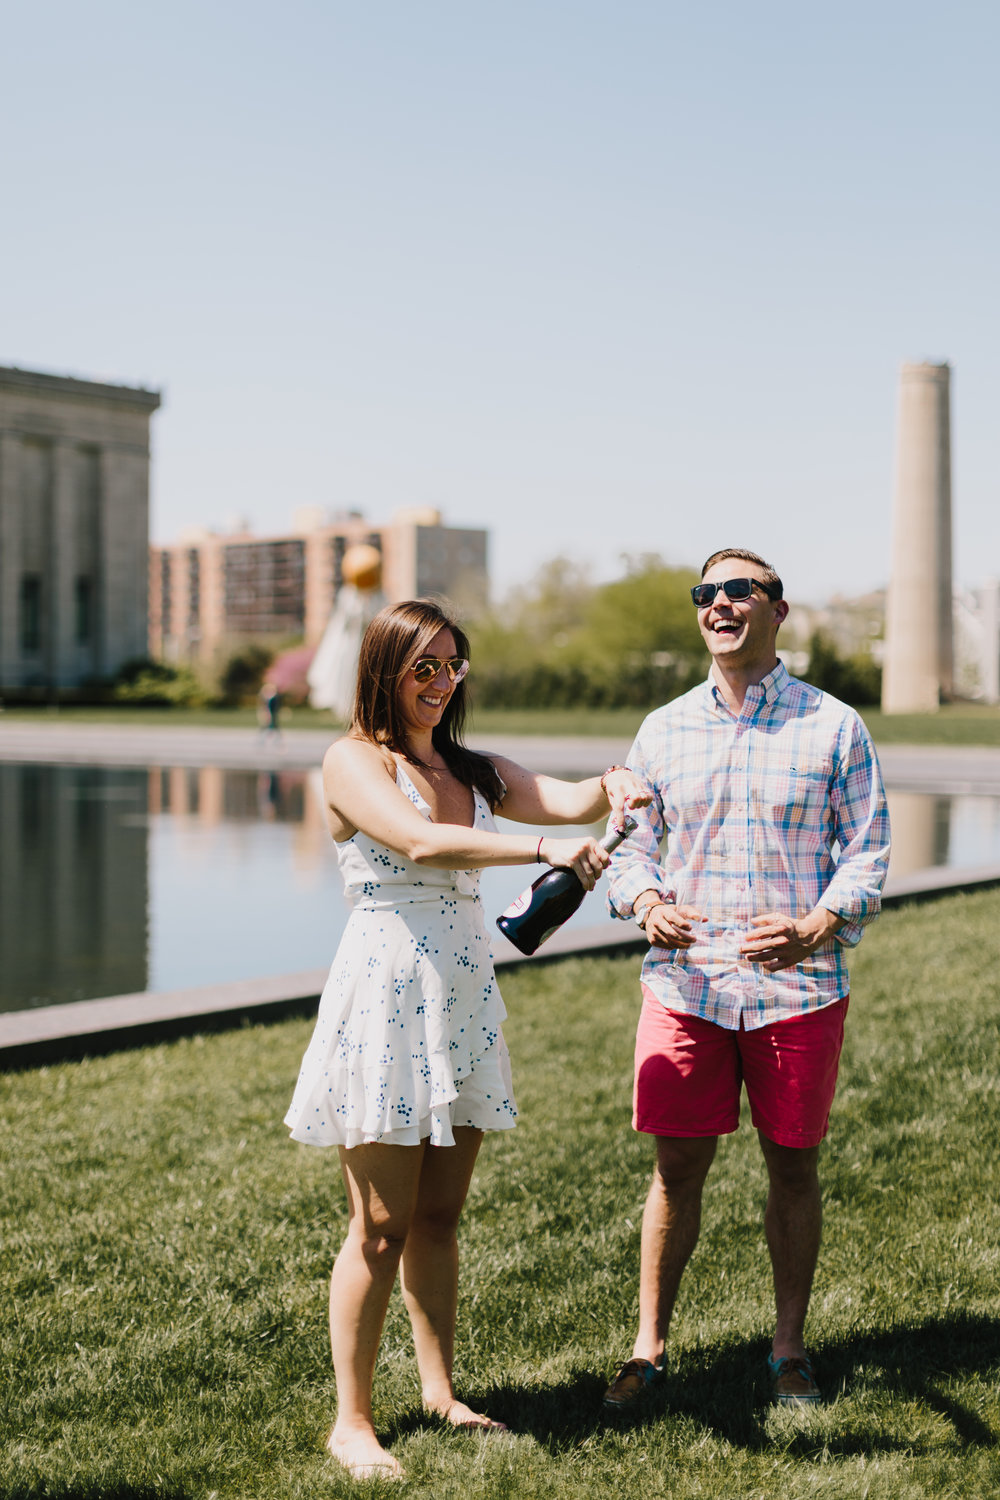 alyssa barletter photography proposal nelson atkins museum kansas city missouri how he asked-9.jpg